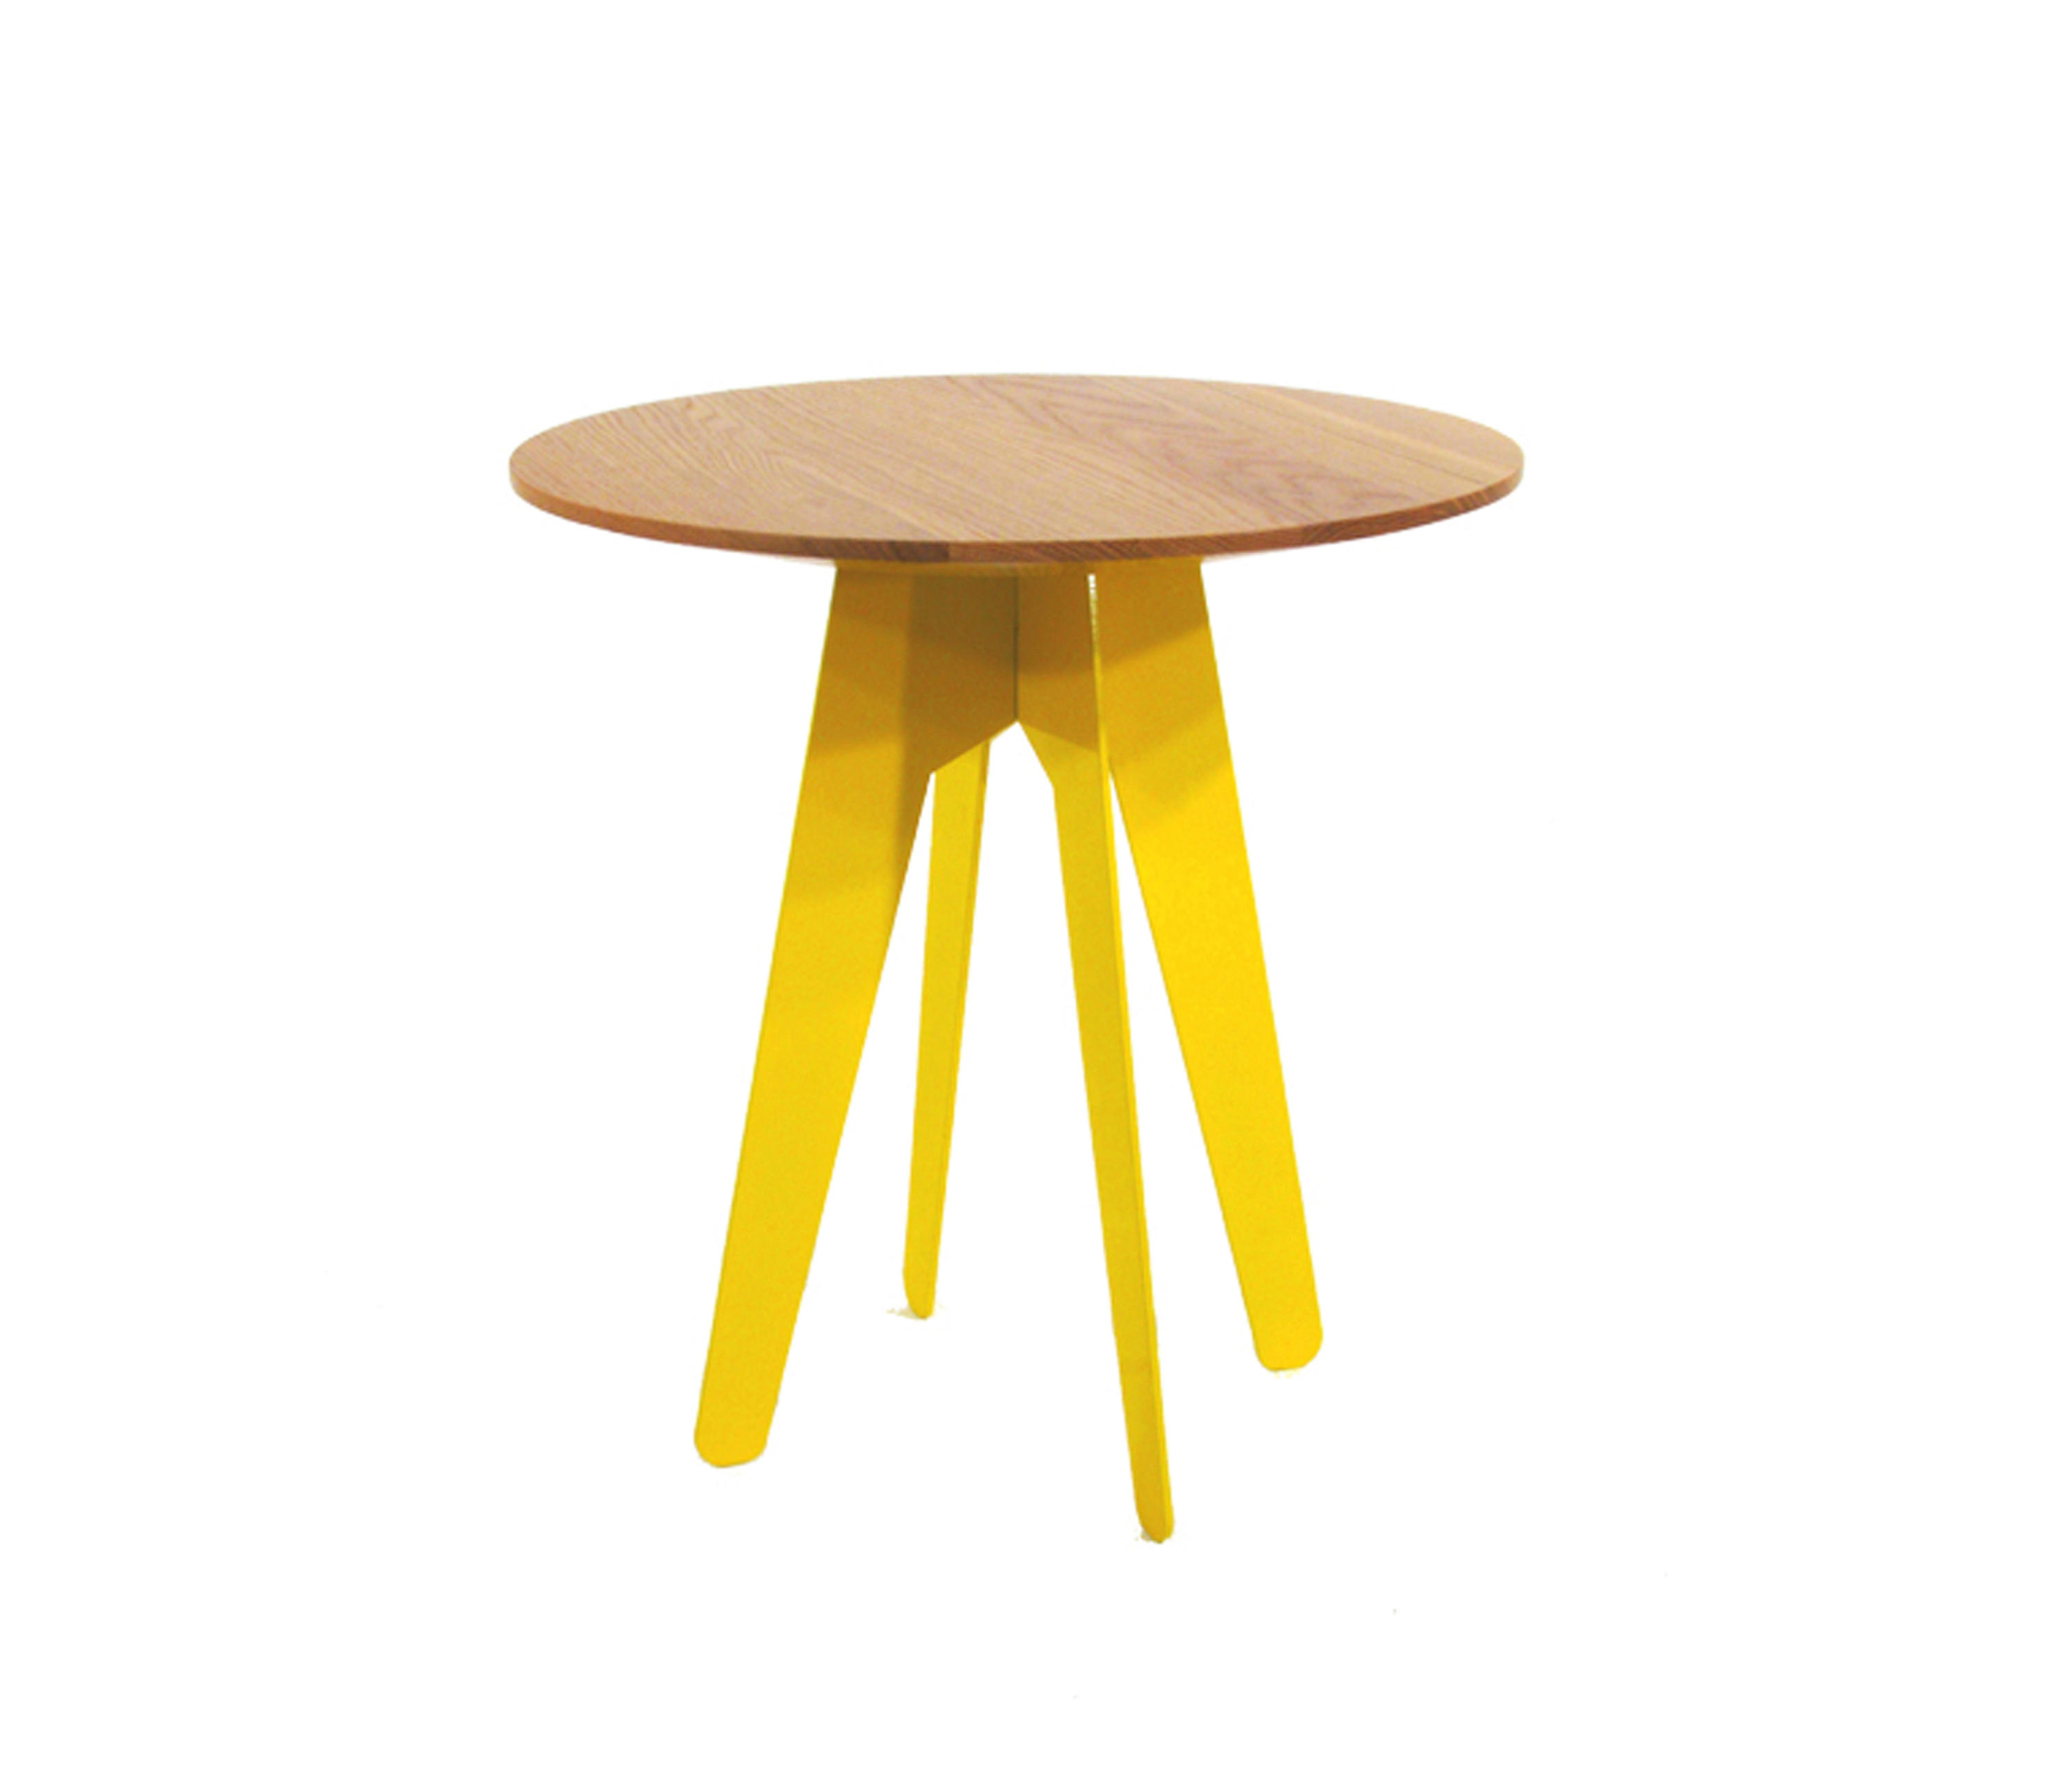 Unique The Burgess Compact Table by Assemblyroom Side tables